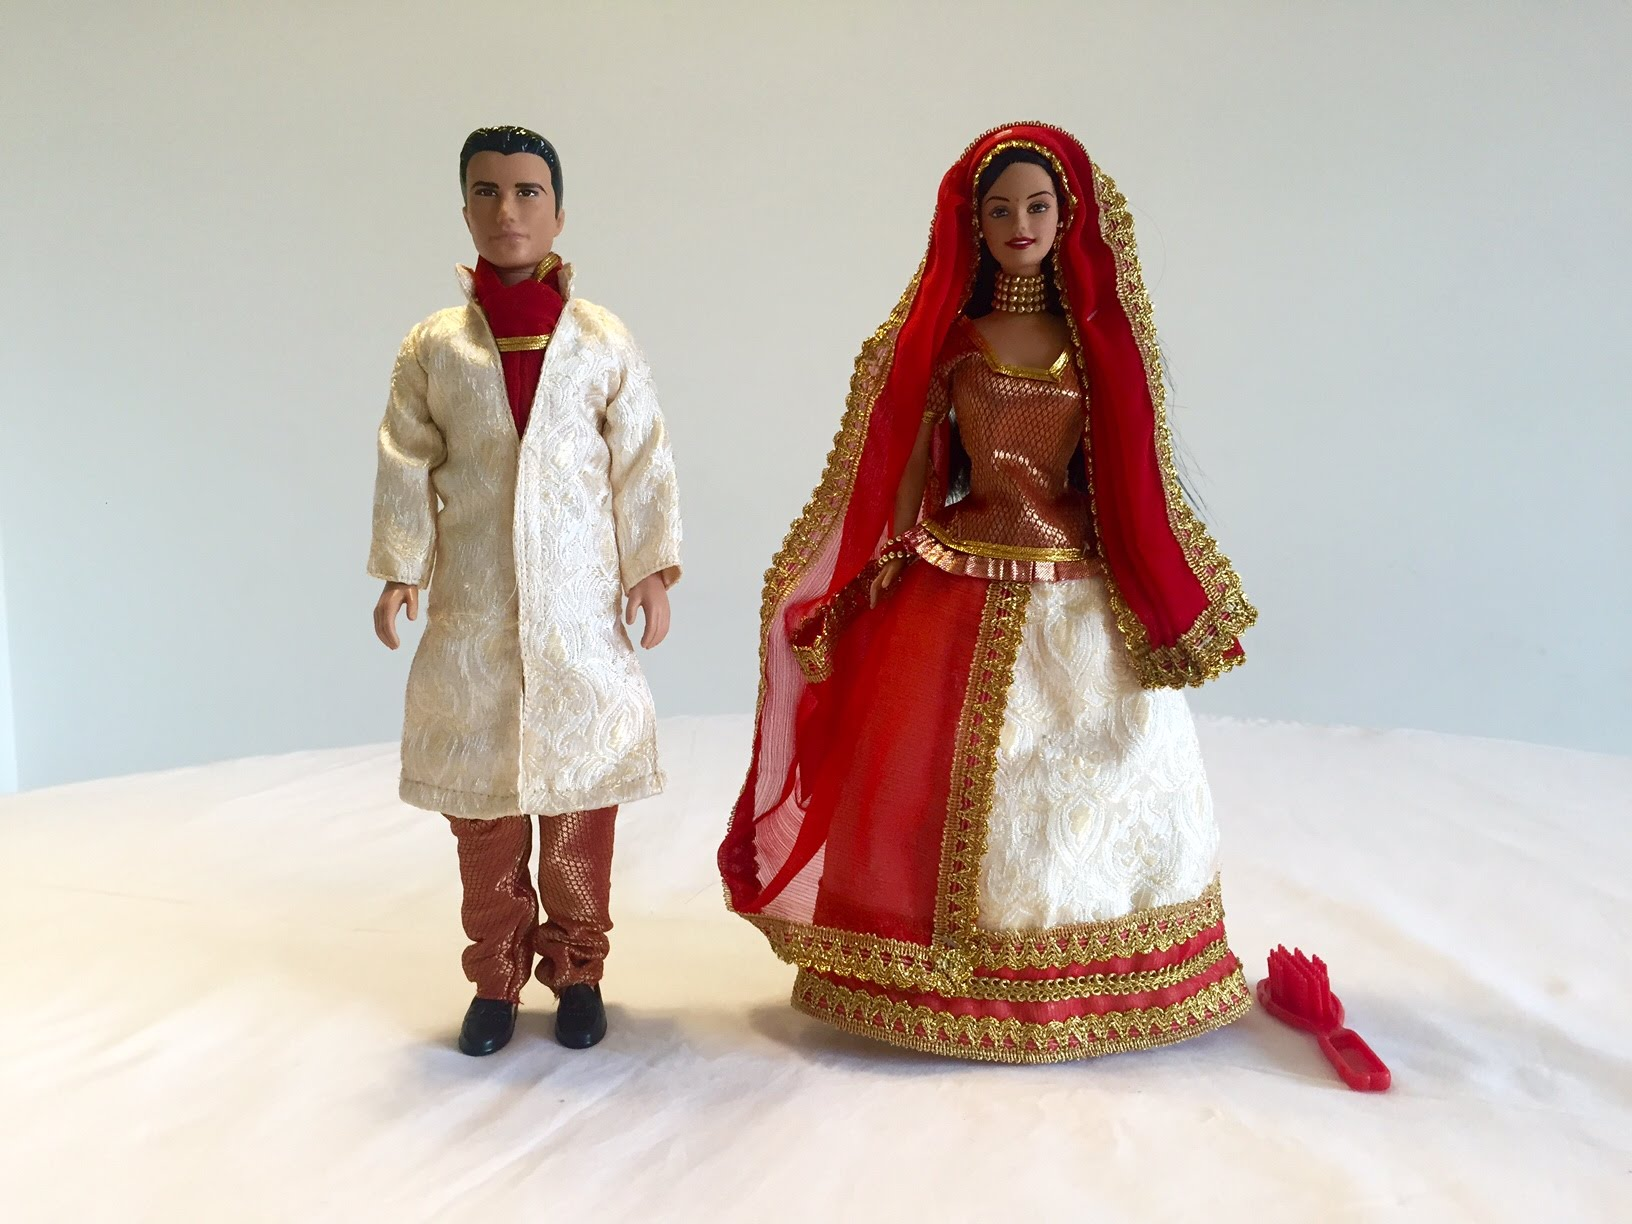 Indian Matrimonial Website And Arranged Marriages